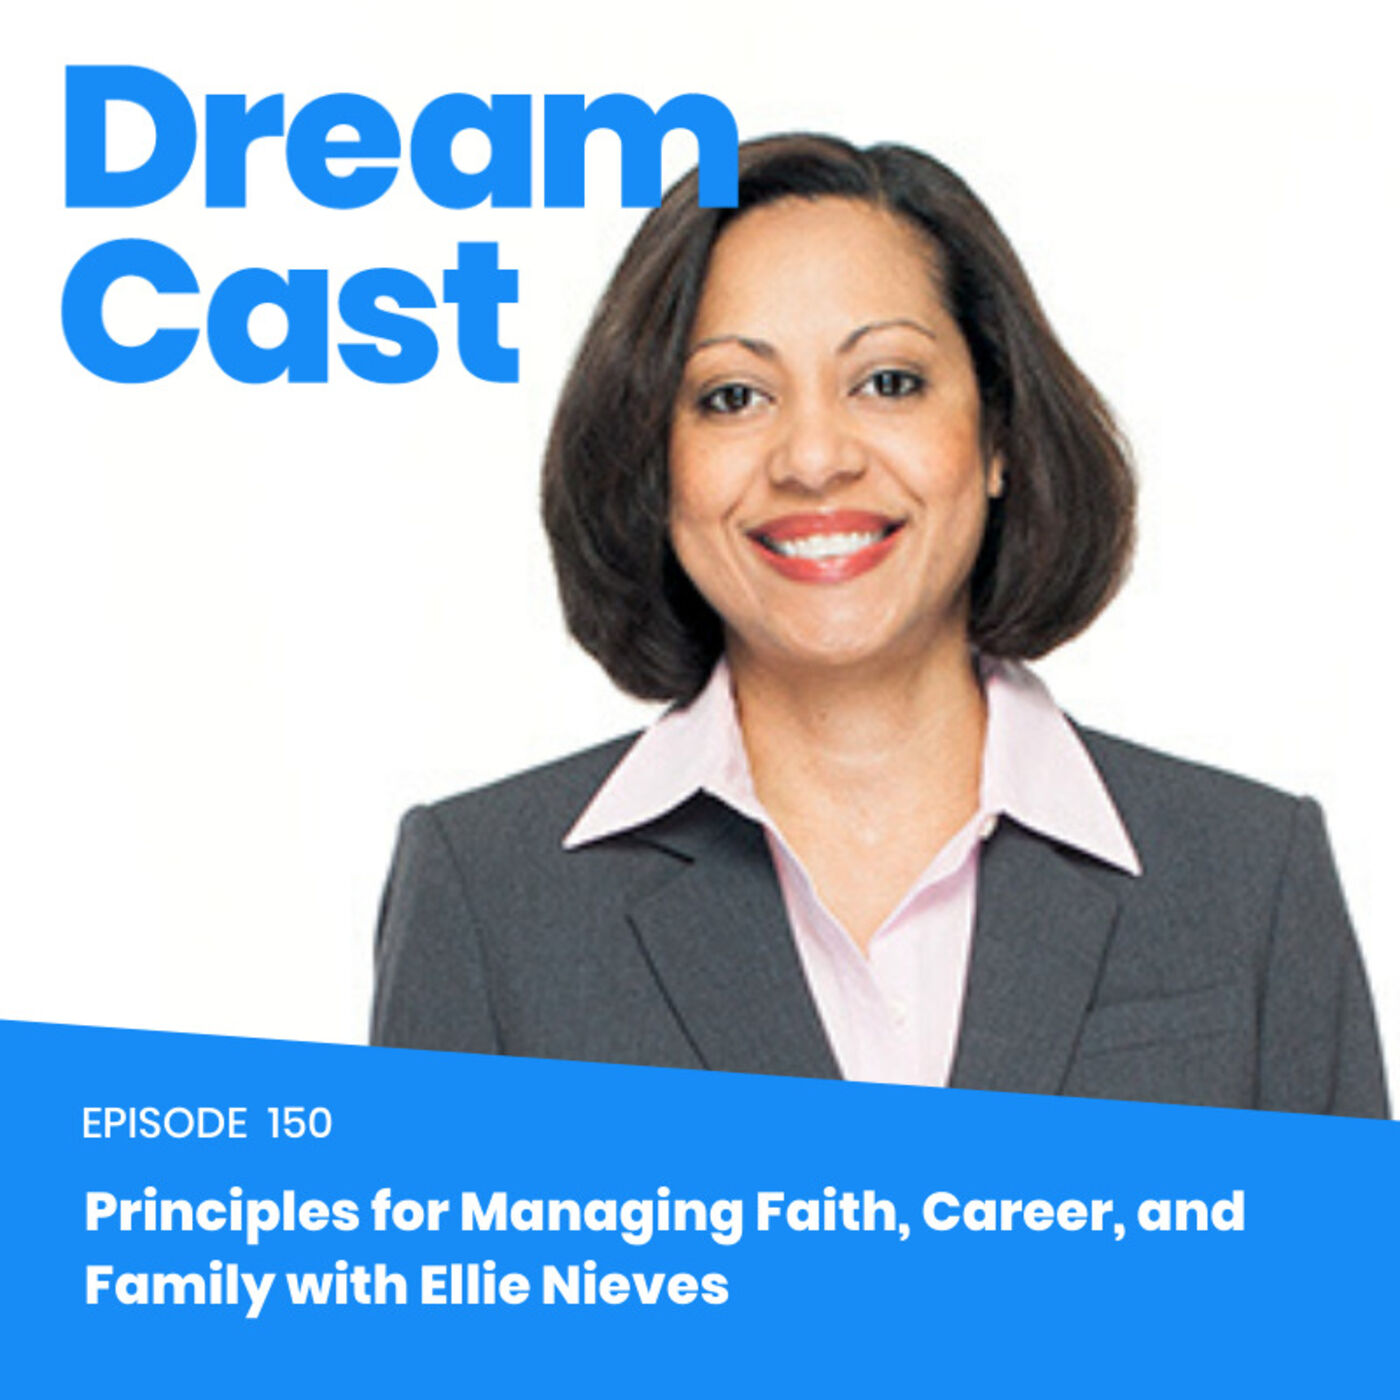 Episode 150 - Principles for Managing Faith, Career, and Family with Ellie Nieves